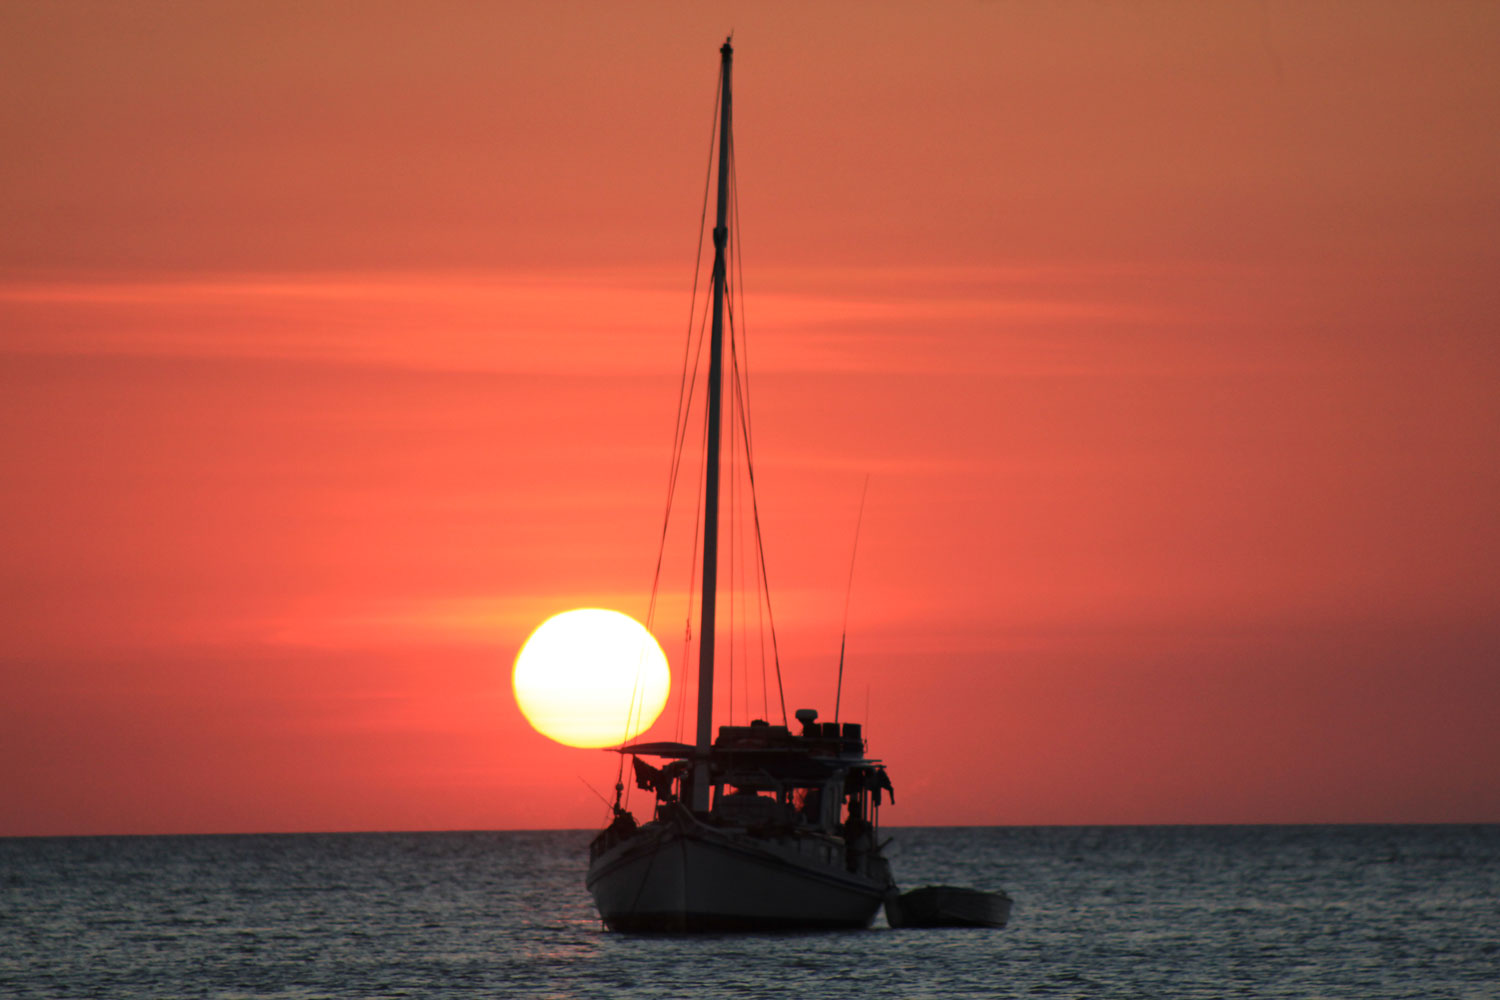 Sri Noa Noa cruising into another glorious indian ocean sunset